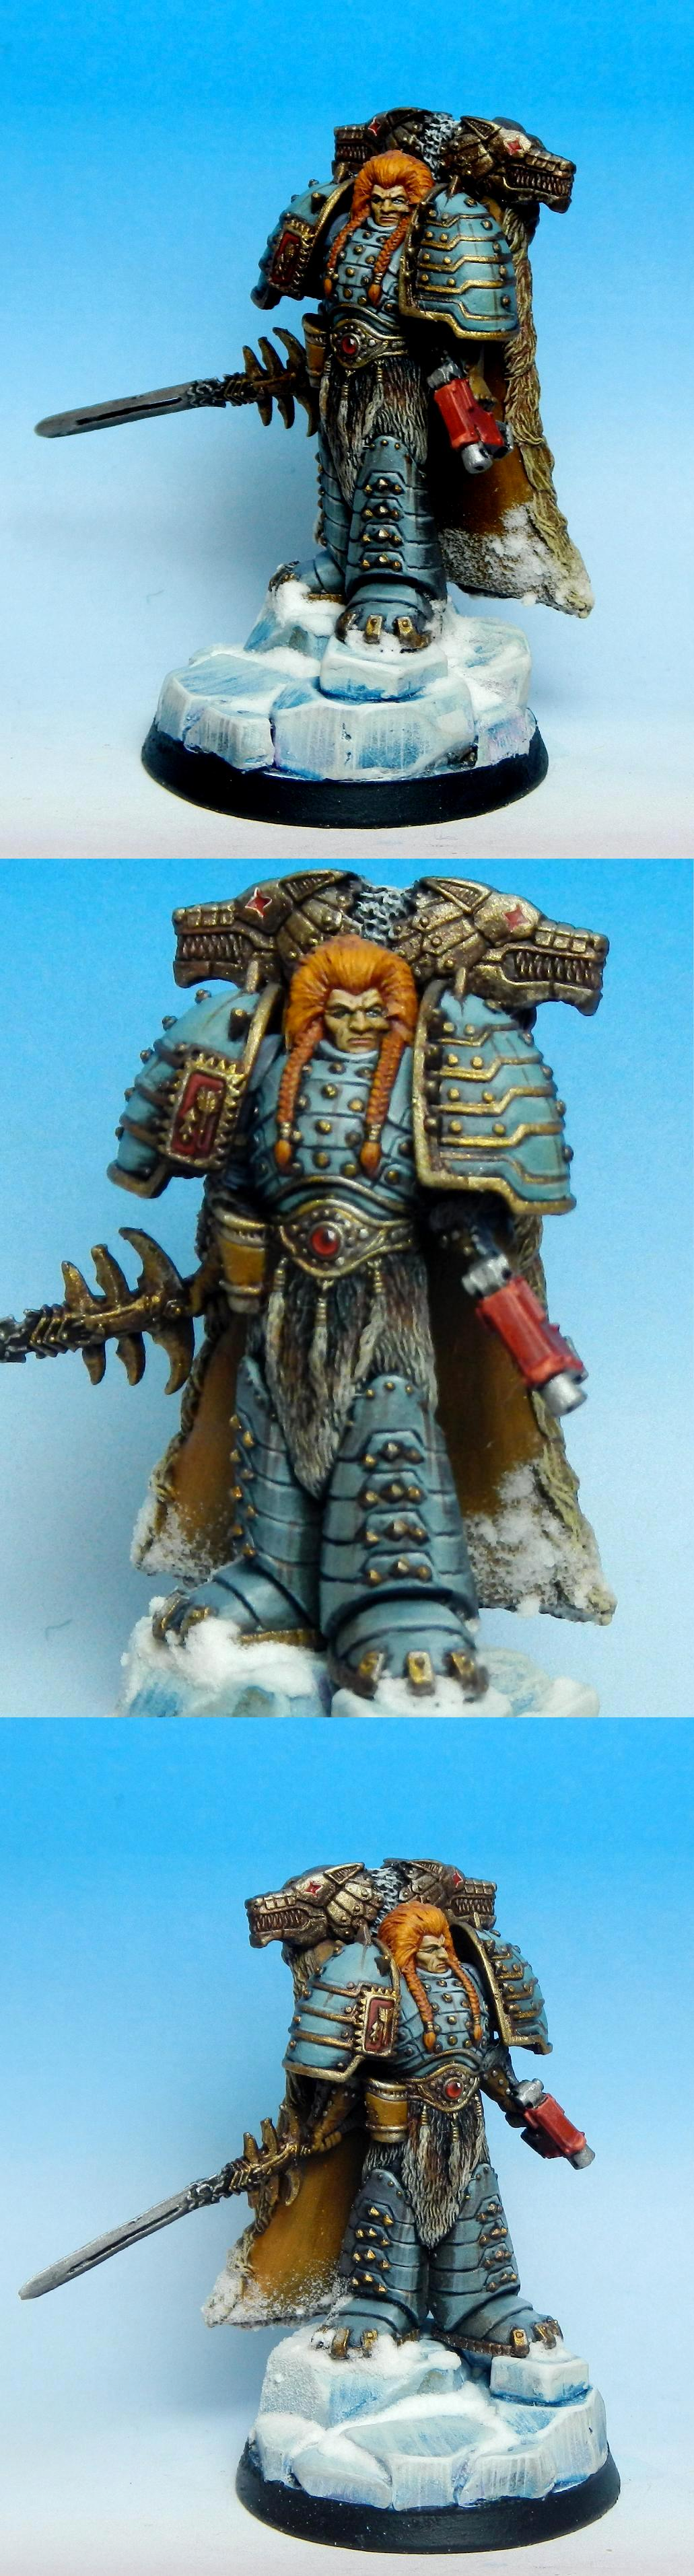 Horus Heresy, Leman Russ, Primarch, Space Wolves